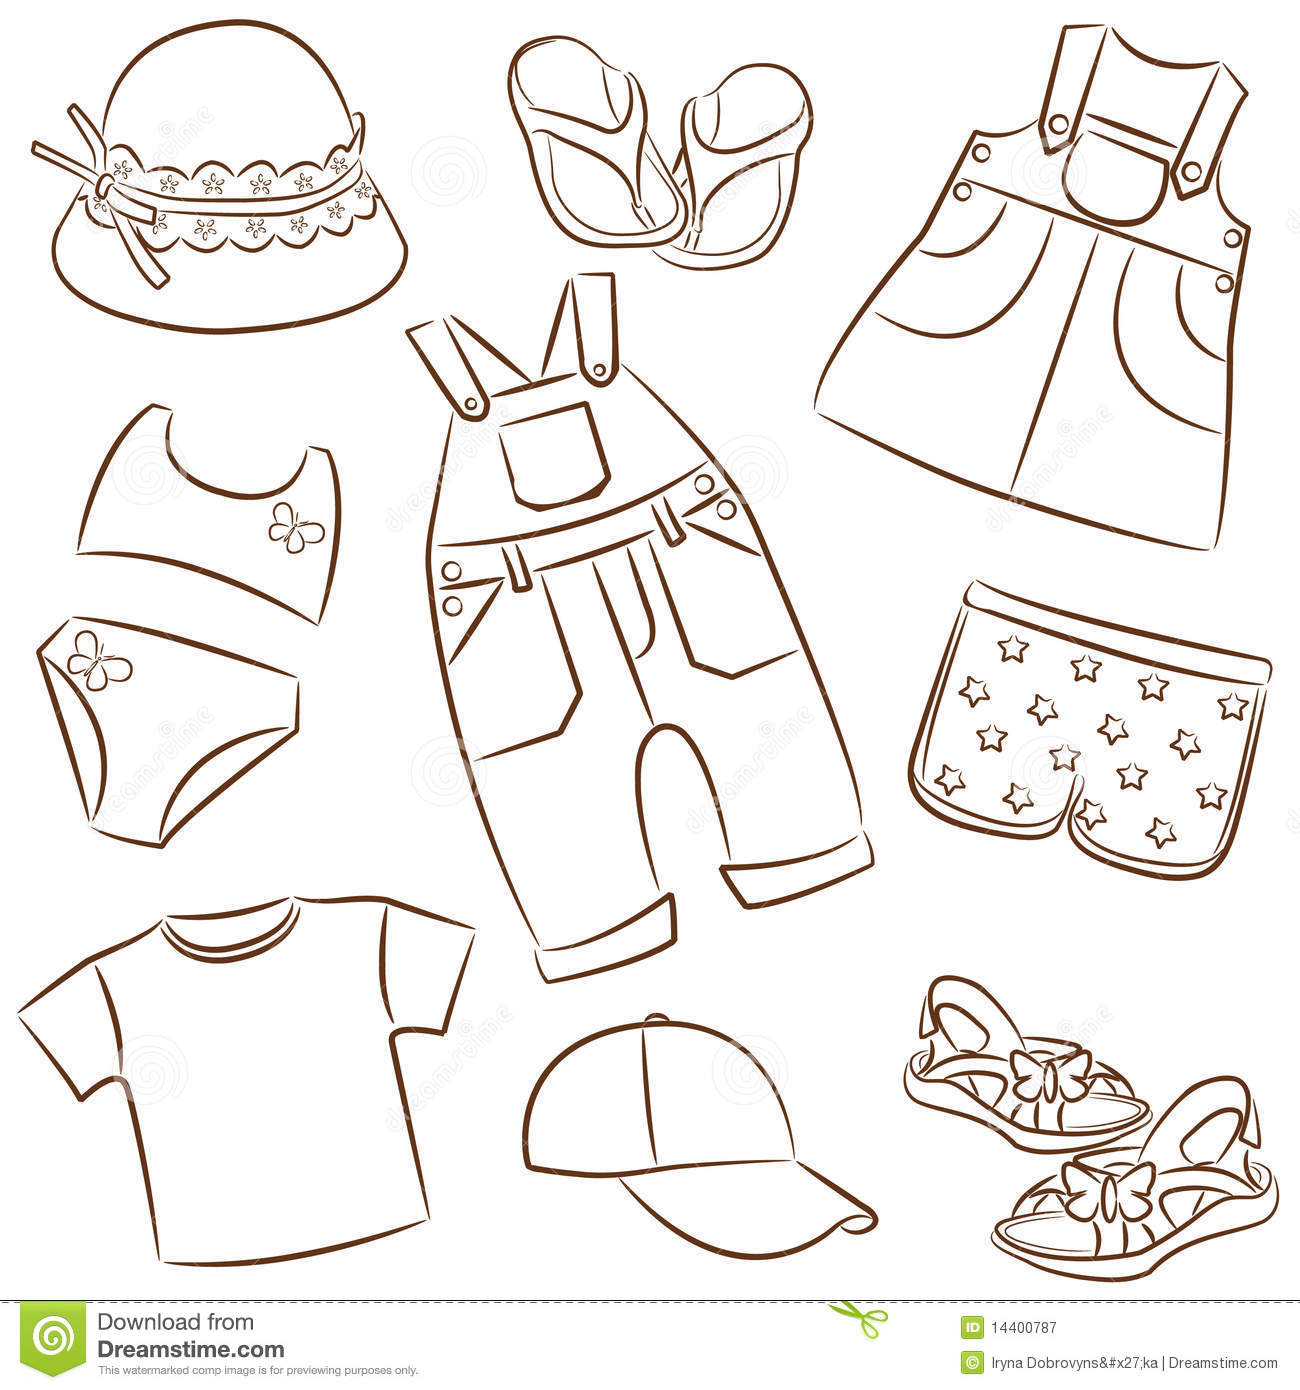 Children s summer clothes stock vector. Illustration of ...